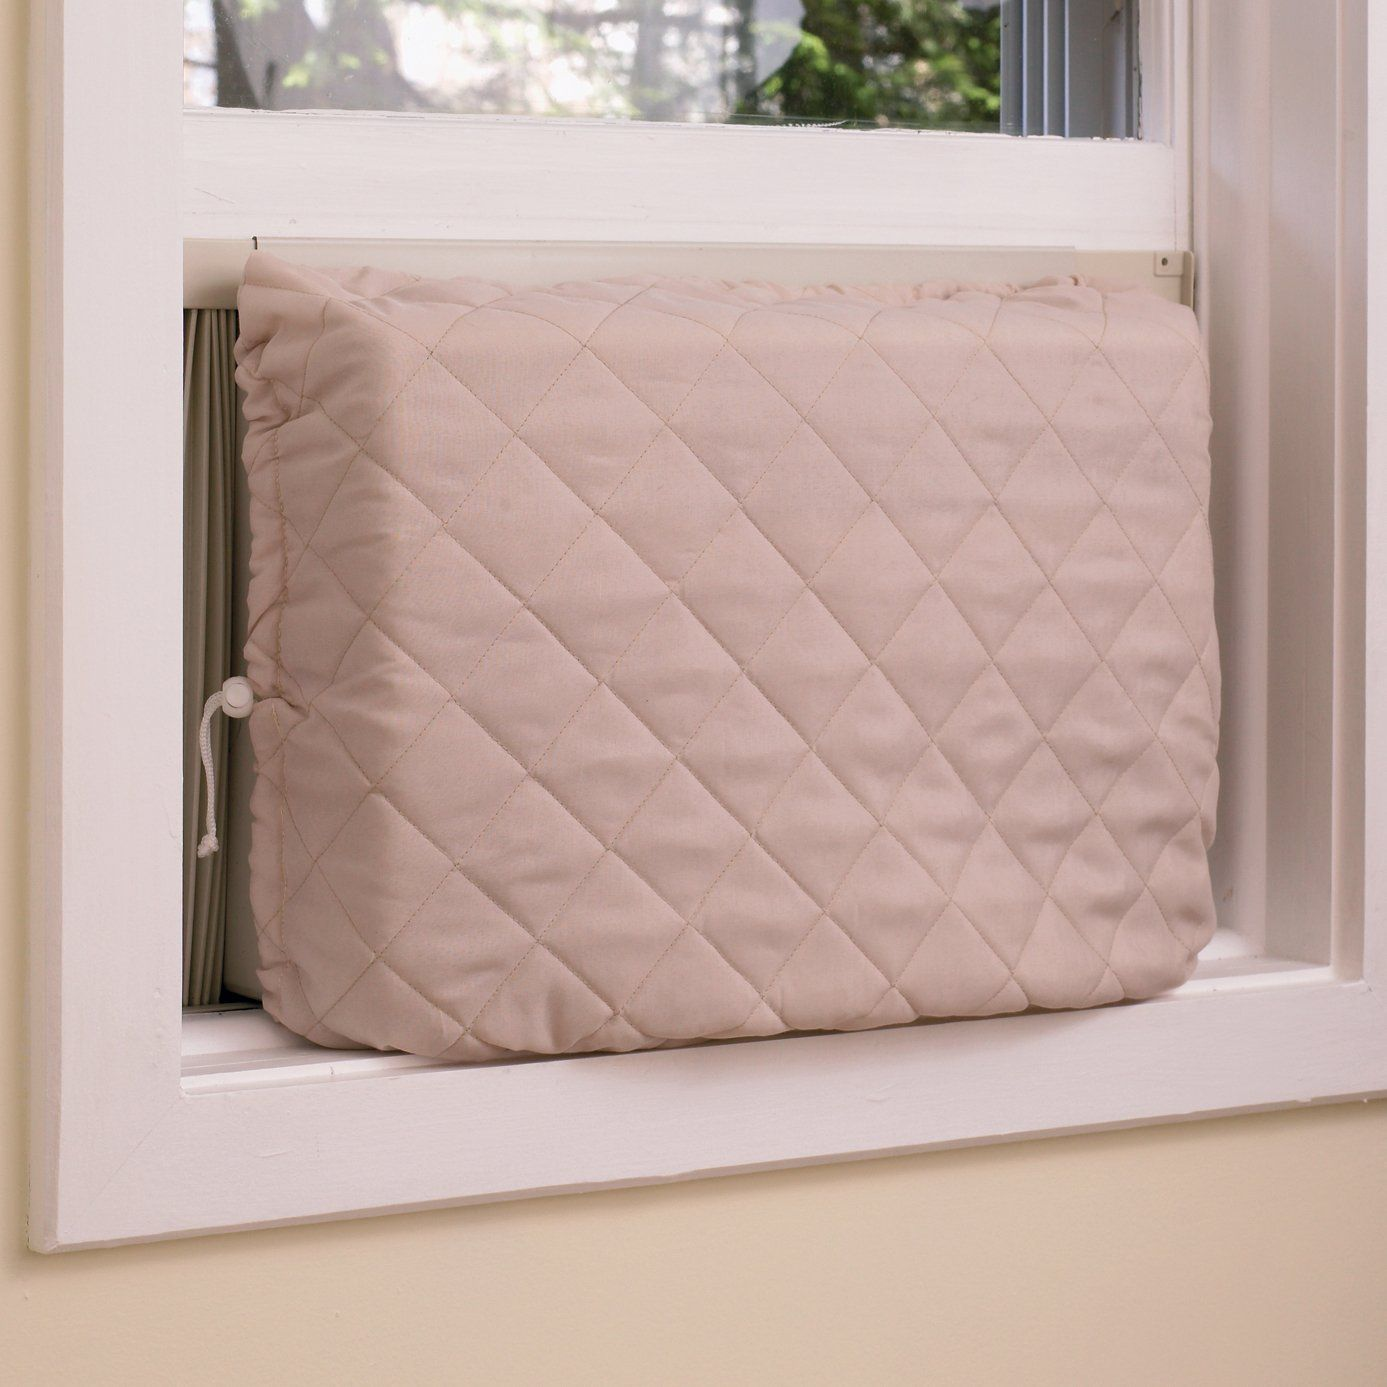 A/C cover (interior) insulated (Amazon) Indoor air